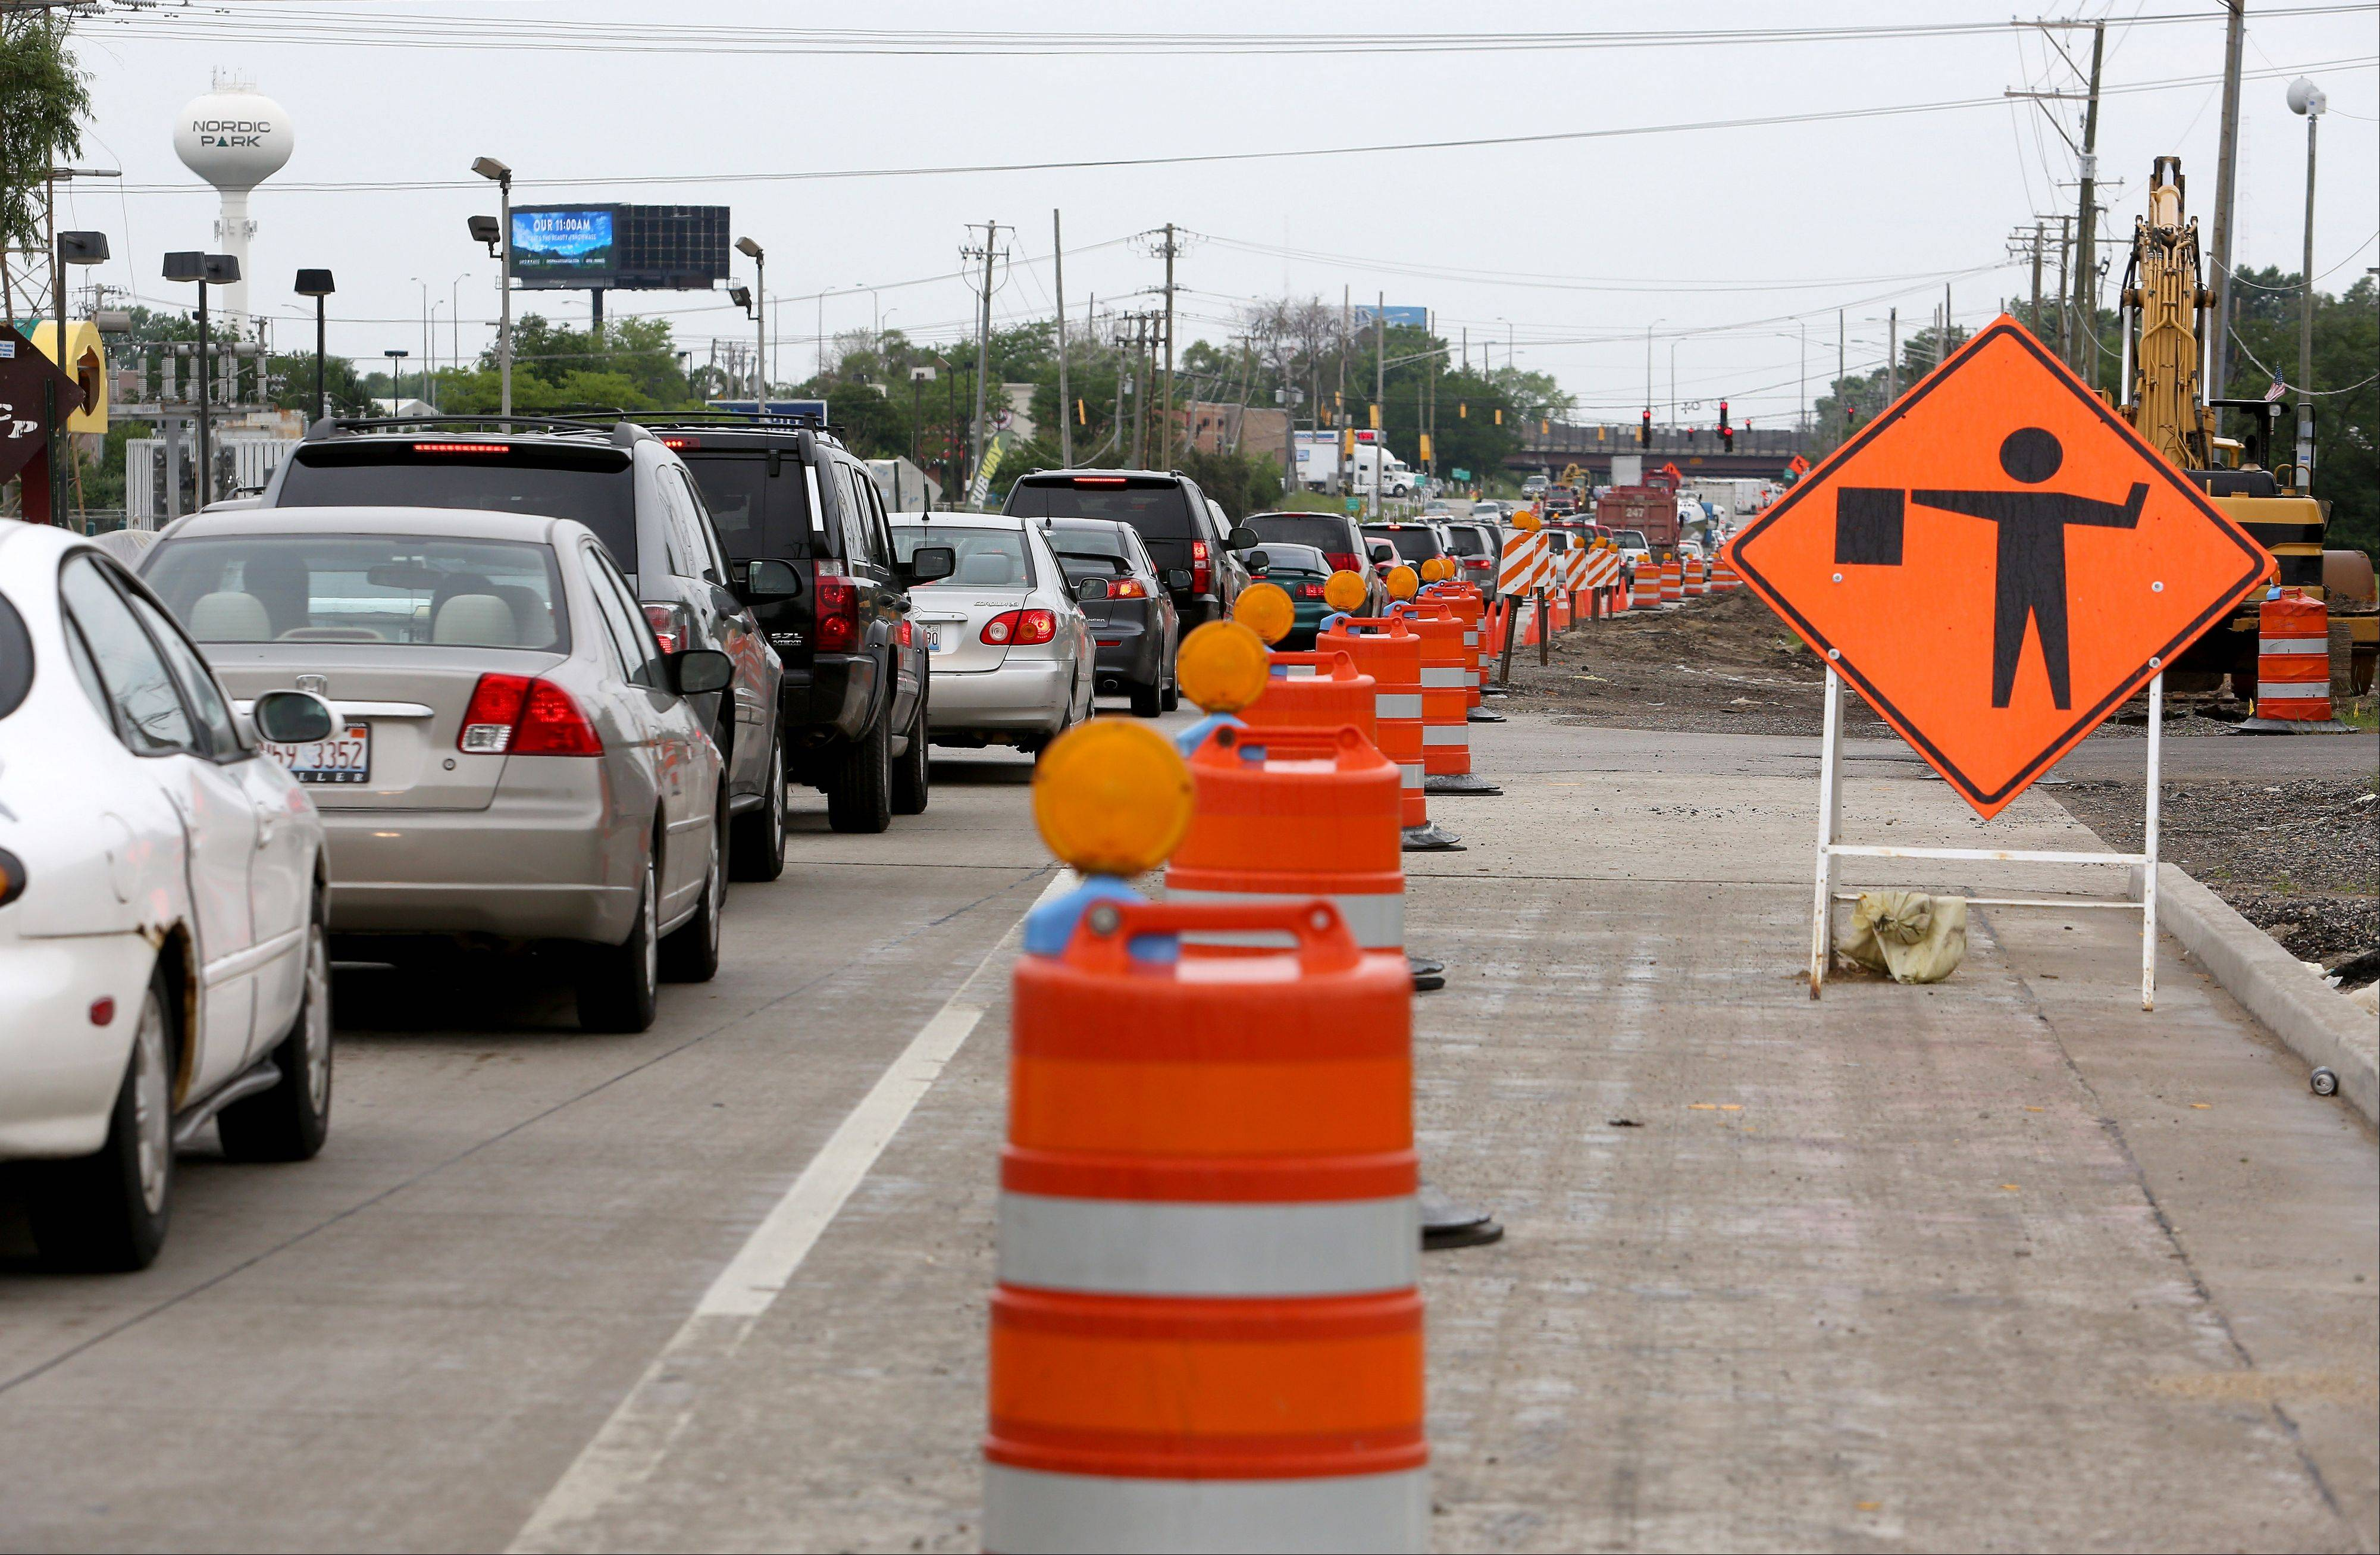 Delays are expected to continue on Rohlwing Road/Route 53 in Itasca and Addison through the summer as crews work on a $45.5 million road project that originally was scheduled to be completed next fall.